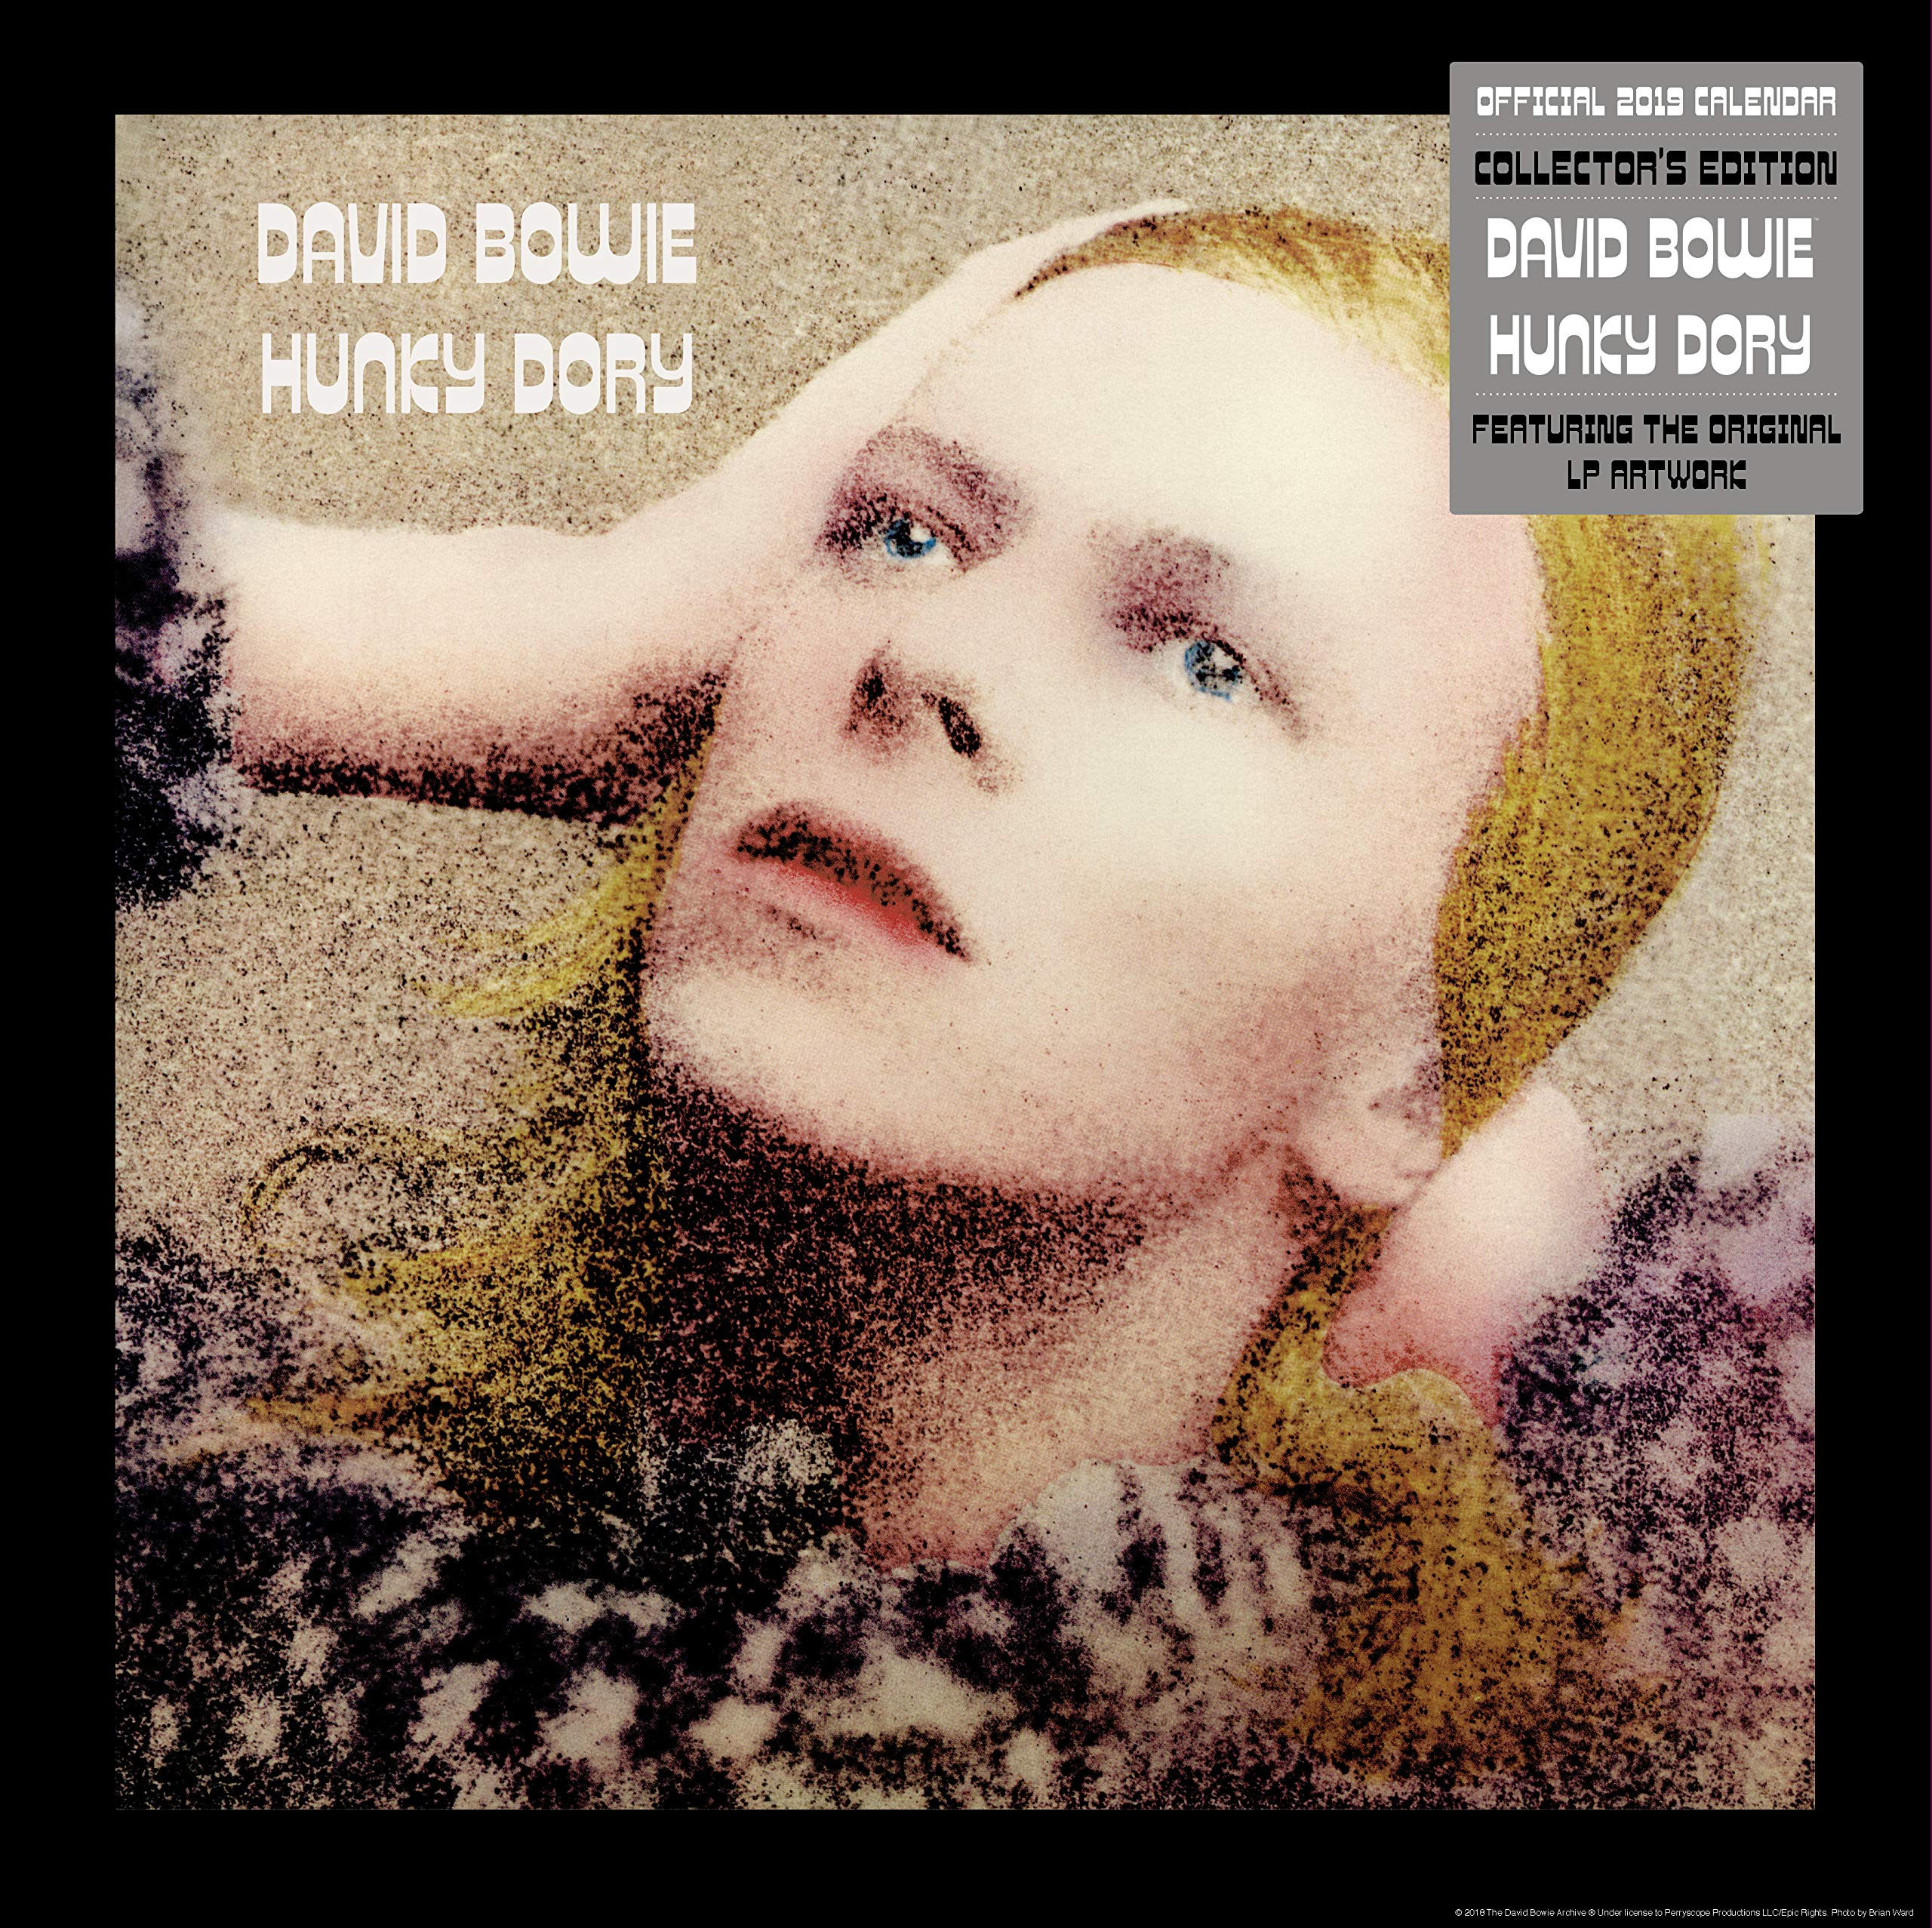 David Bowie Collectors Edition Official 2019 Calendar - Square Wall Calendar with Record Sleeve Cover Format Calendar – Wall Calendar, 15 Oct 2018 Danilo 1785495852 Music & Dance Address Books